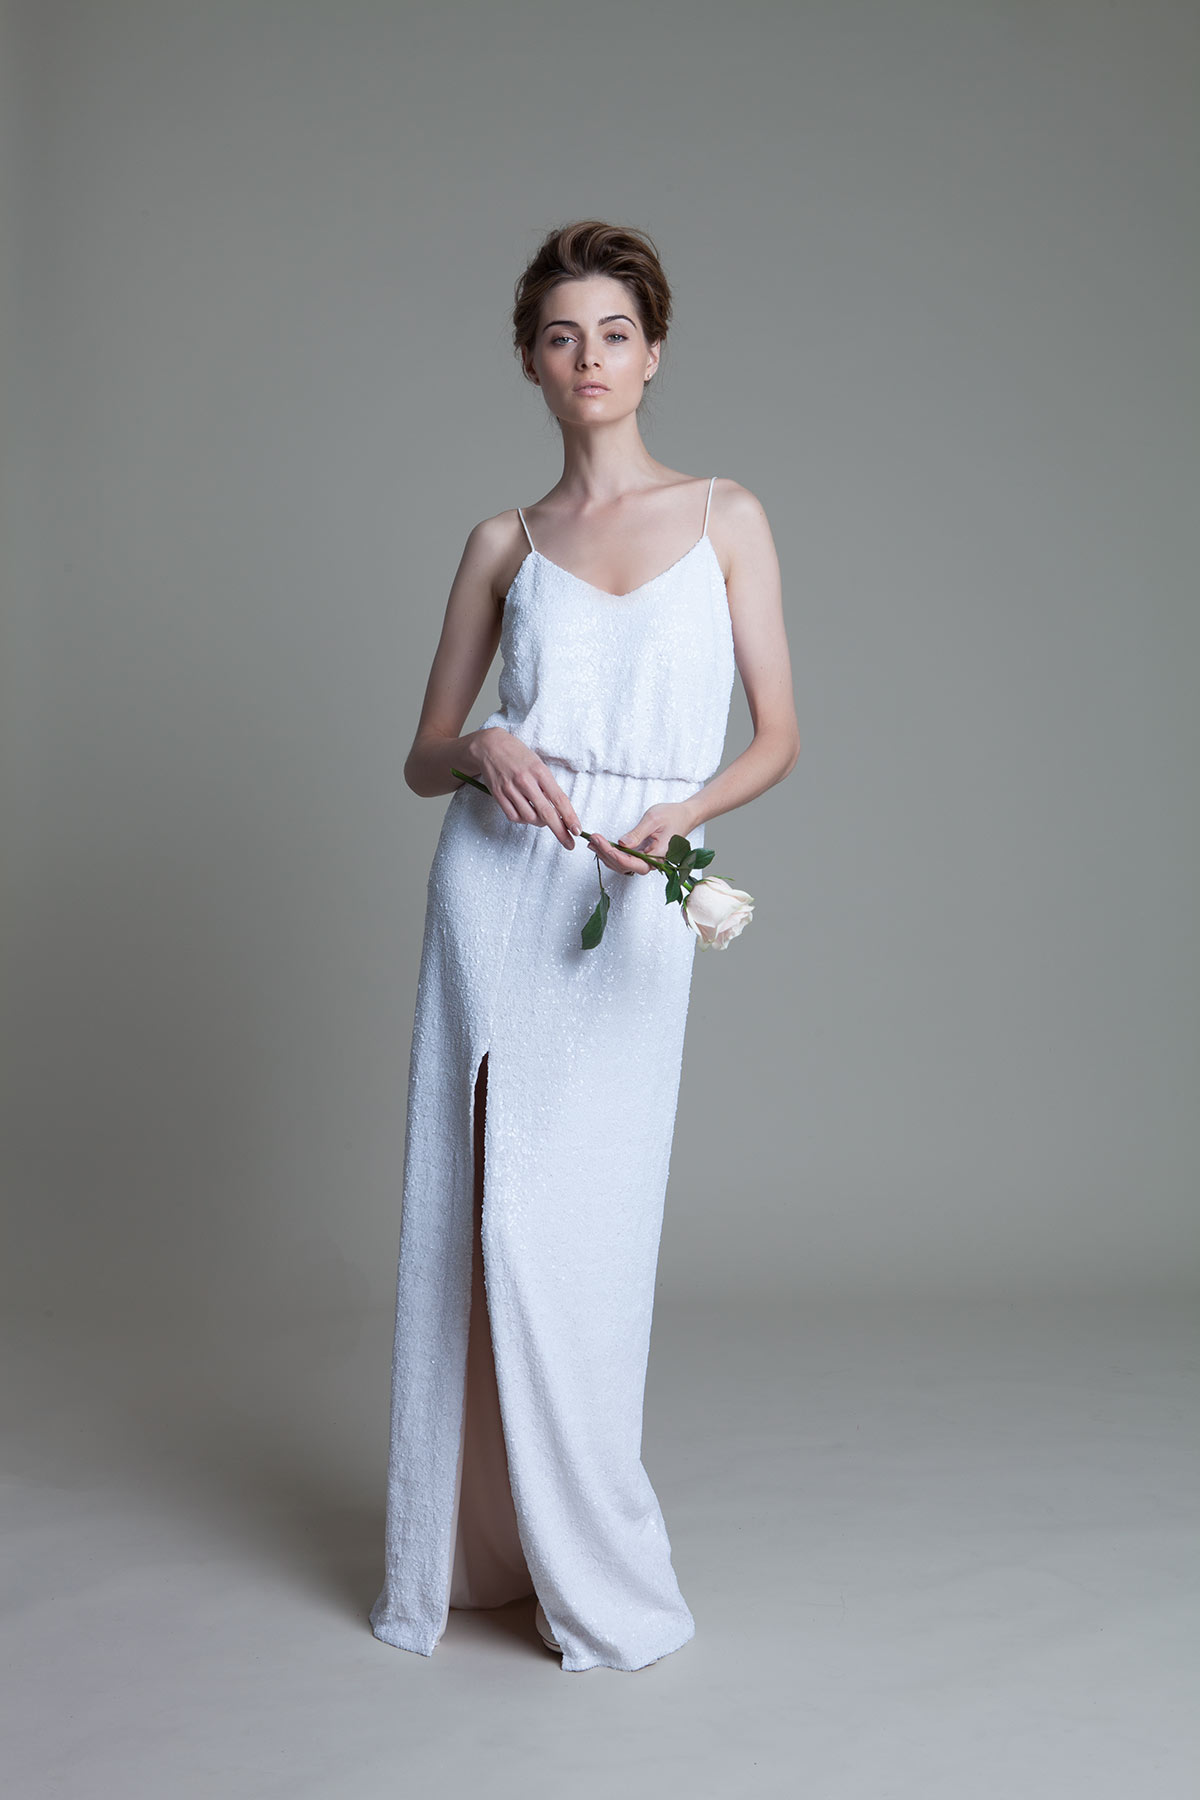 Celeste Sequinned Dress with High Slit Wedding Dress by Halfpenny London